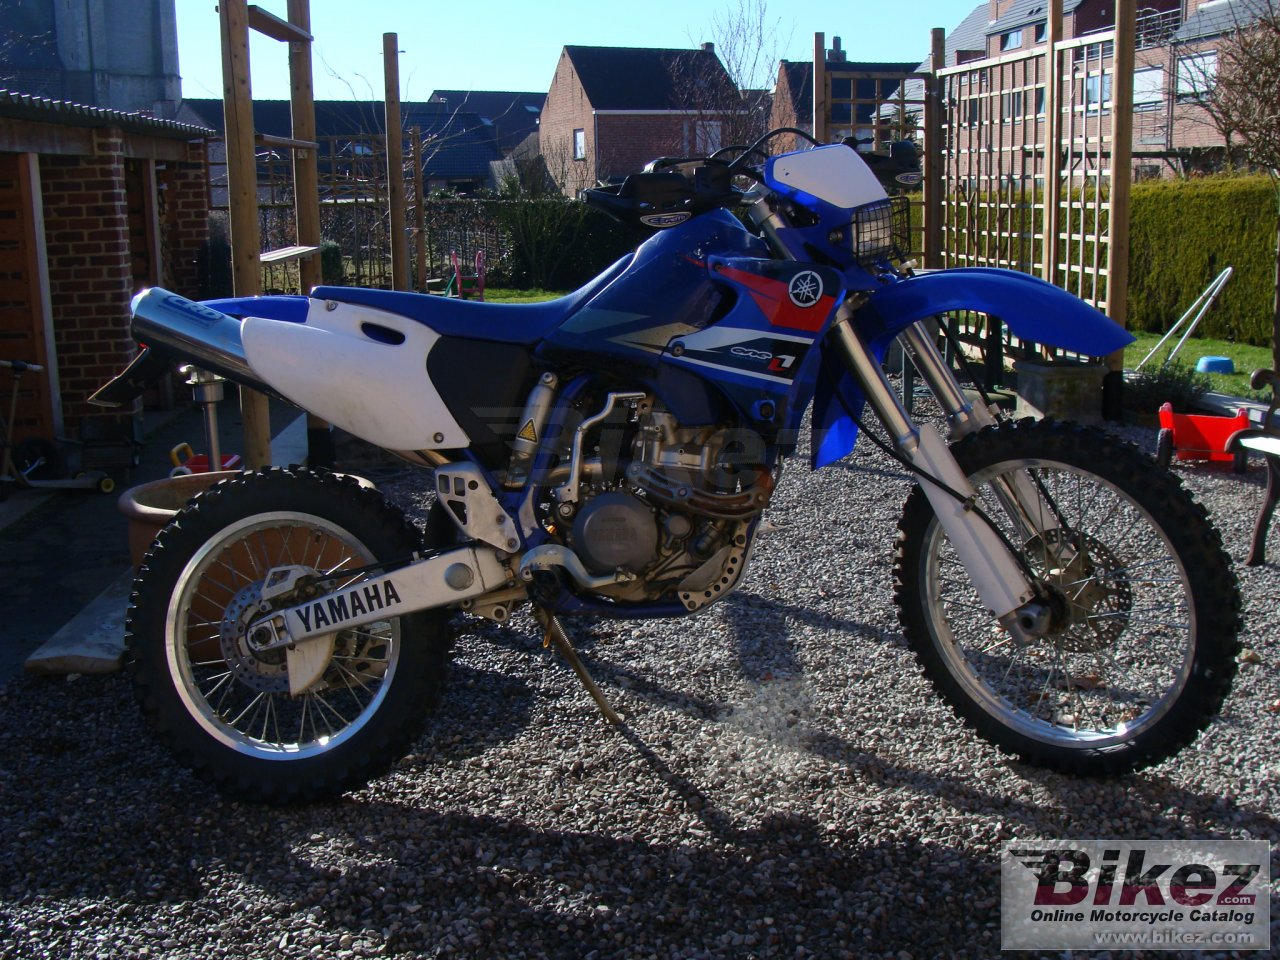 Big  wr 400 f enduro picture and wallpaper from Bikez.com